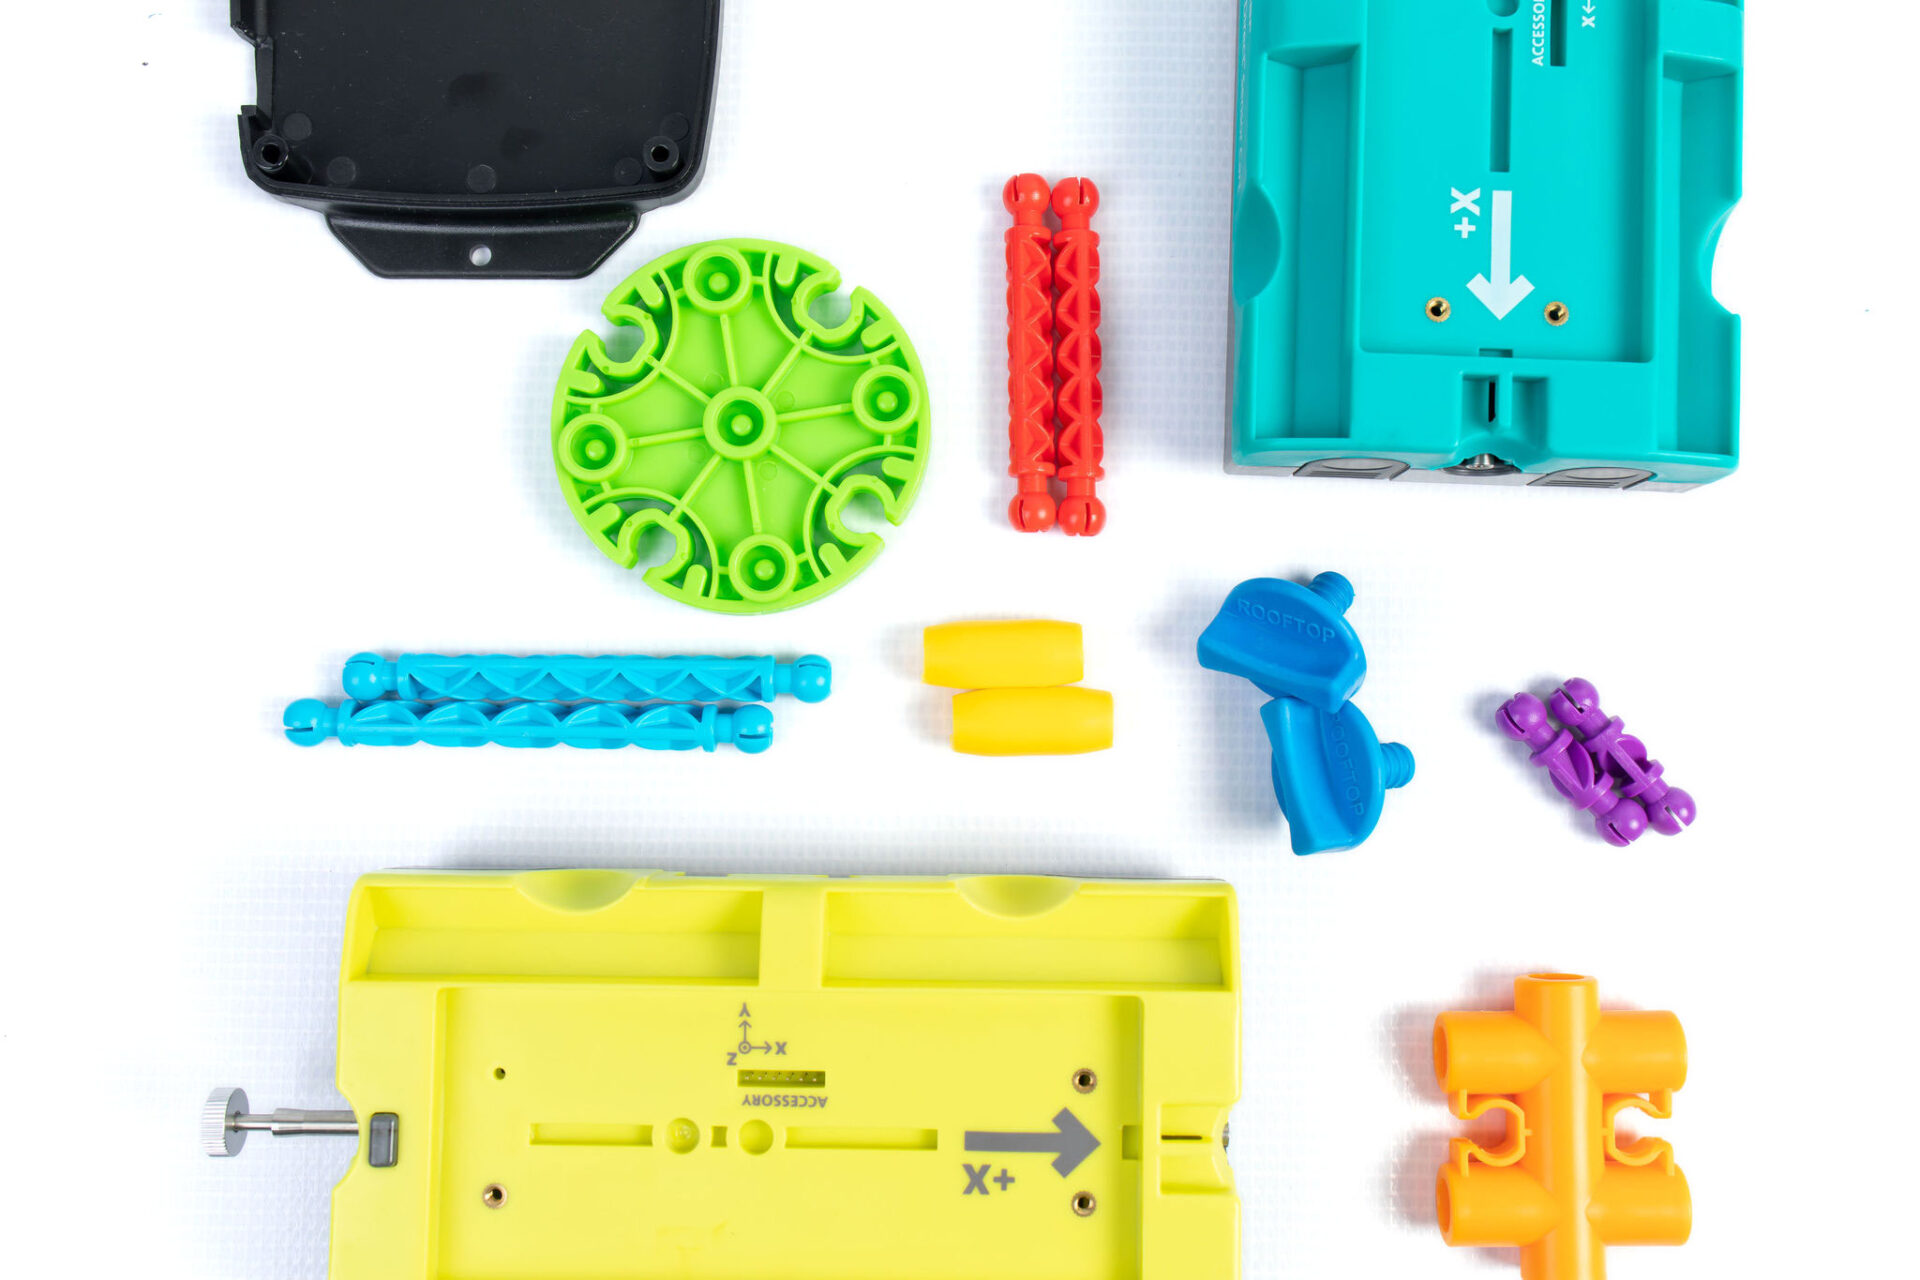 miscellaneous colorful plastic parts and pieces